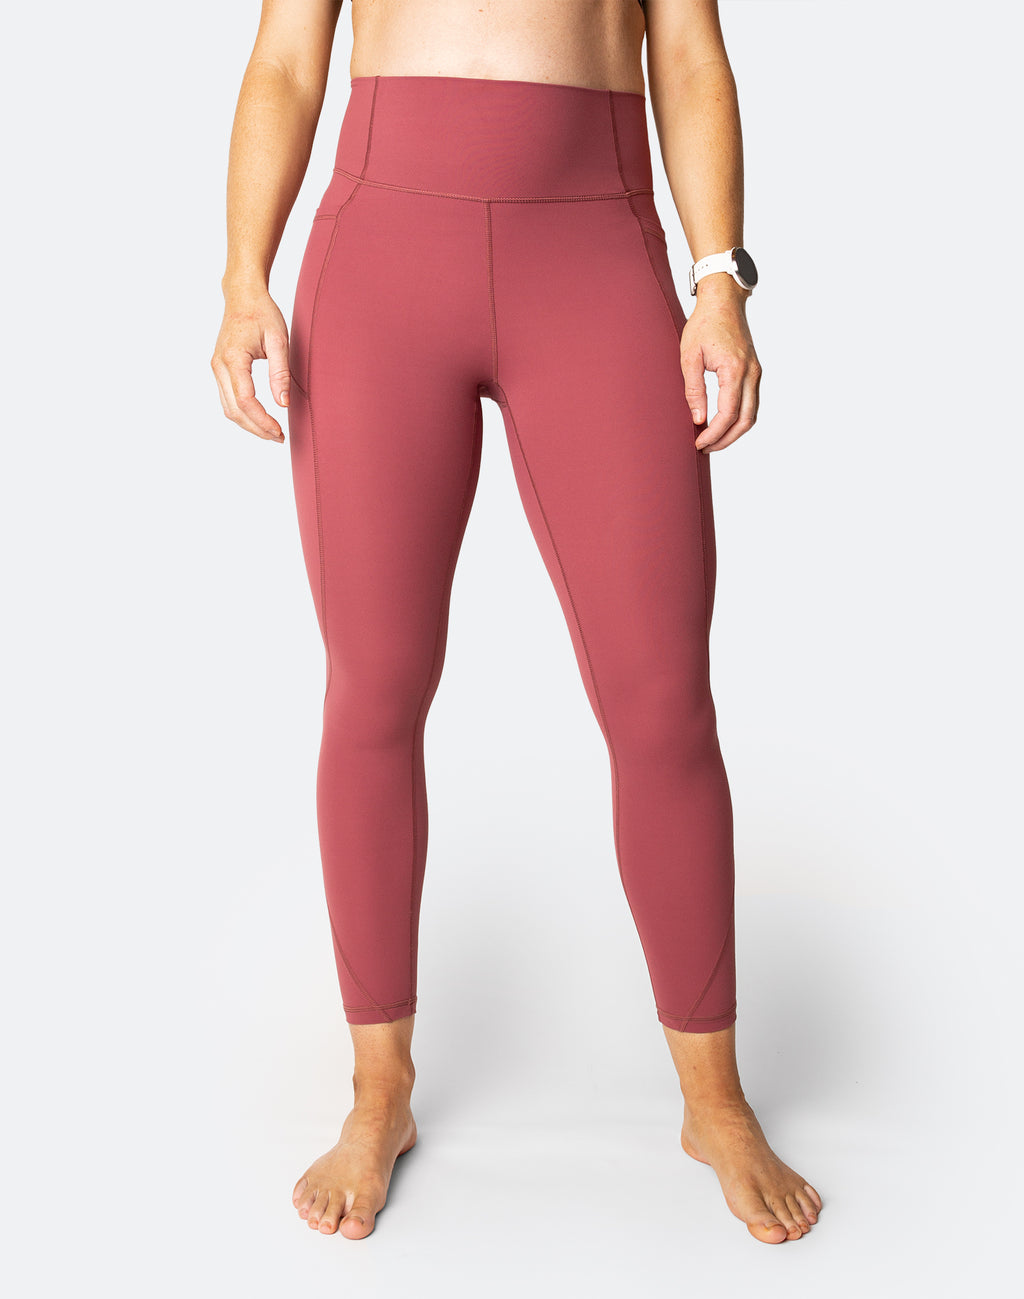 high waisted tights with pockets in the colour rouge